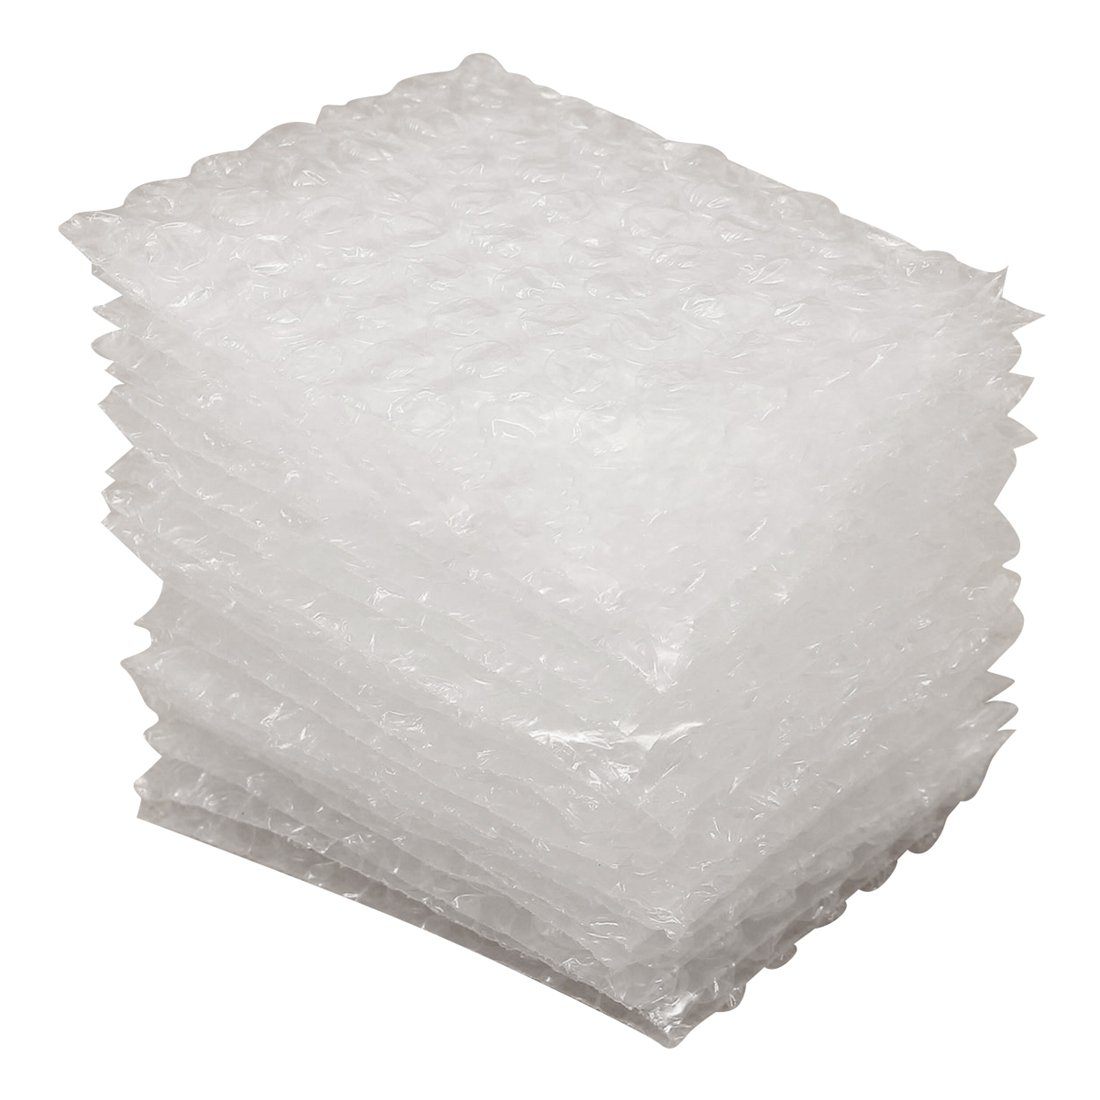 SODIAL(R) Lot 20PCs Clear Recyclable Packing Small Pouches Poly Bubble Envelopes Wrap Bags, 17X25cm/6.69X9.84inch